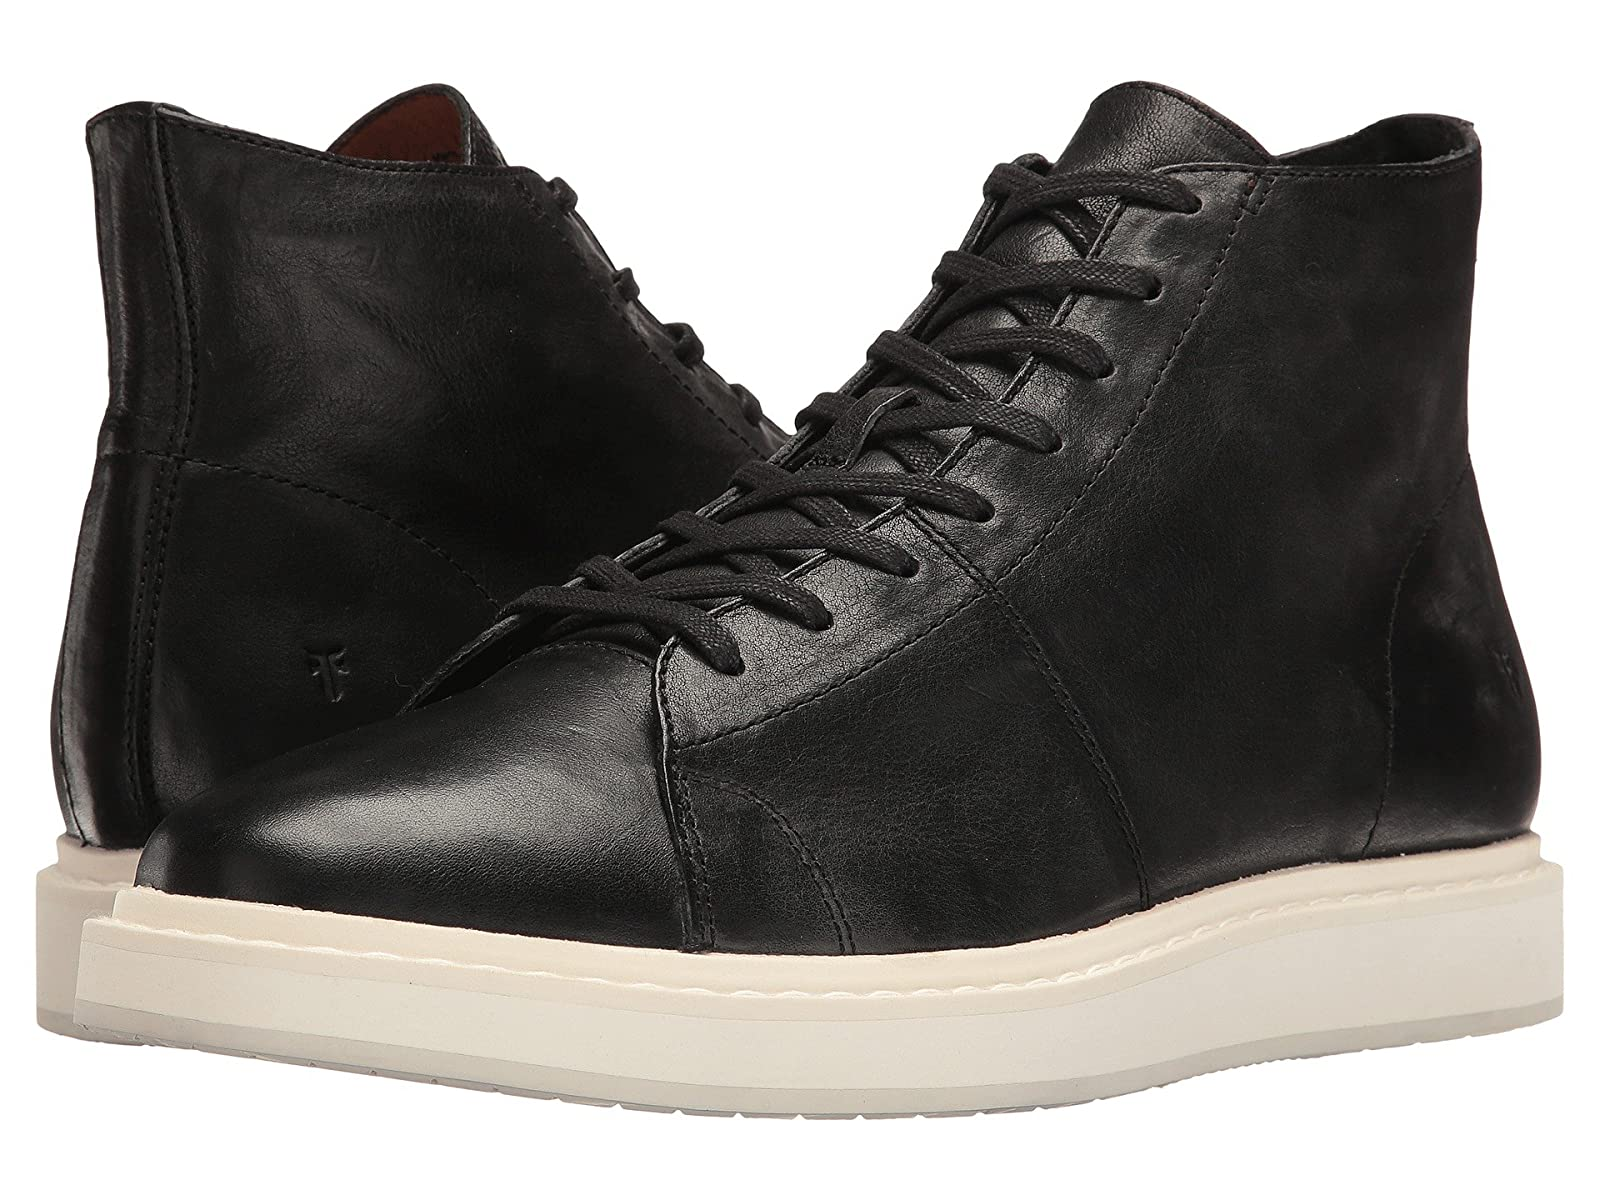 Frye Mercer HighCheap and distinctive eye-catching shoes